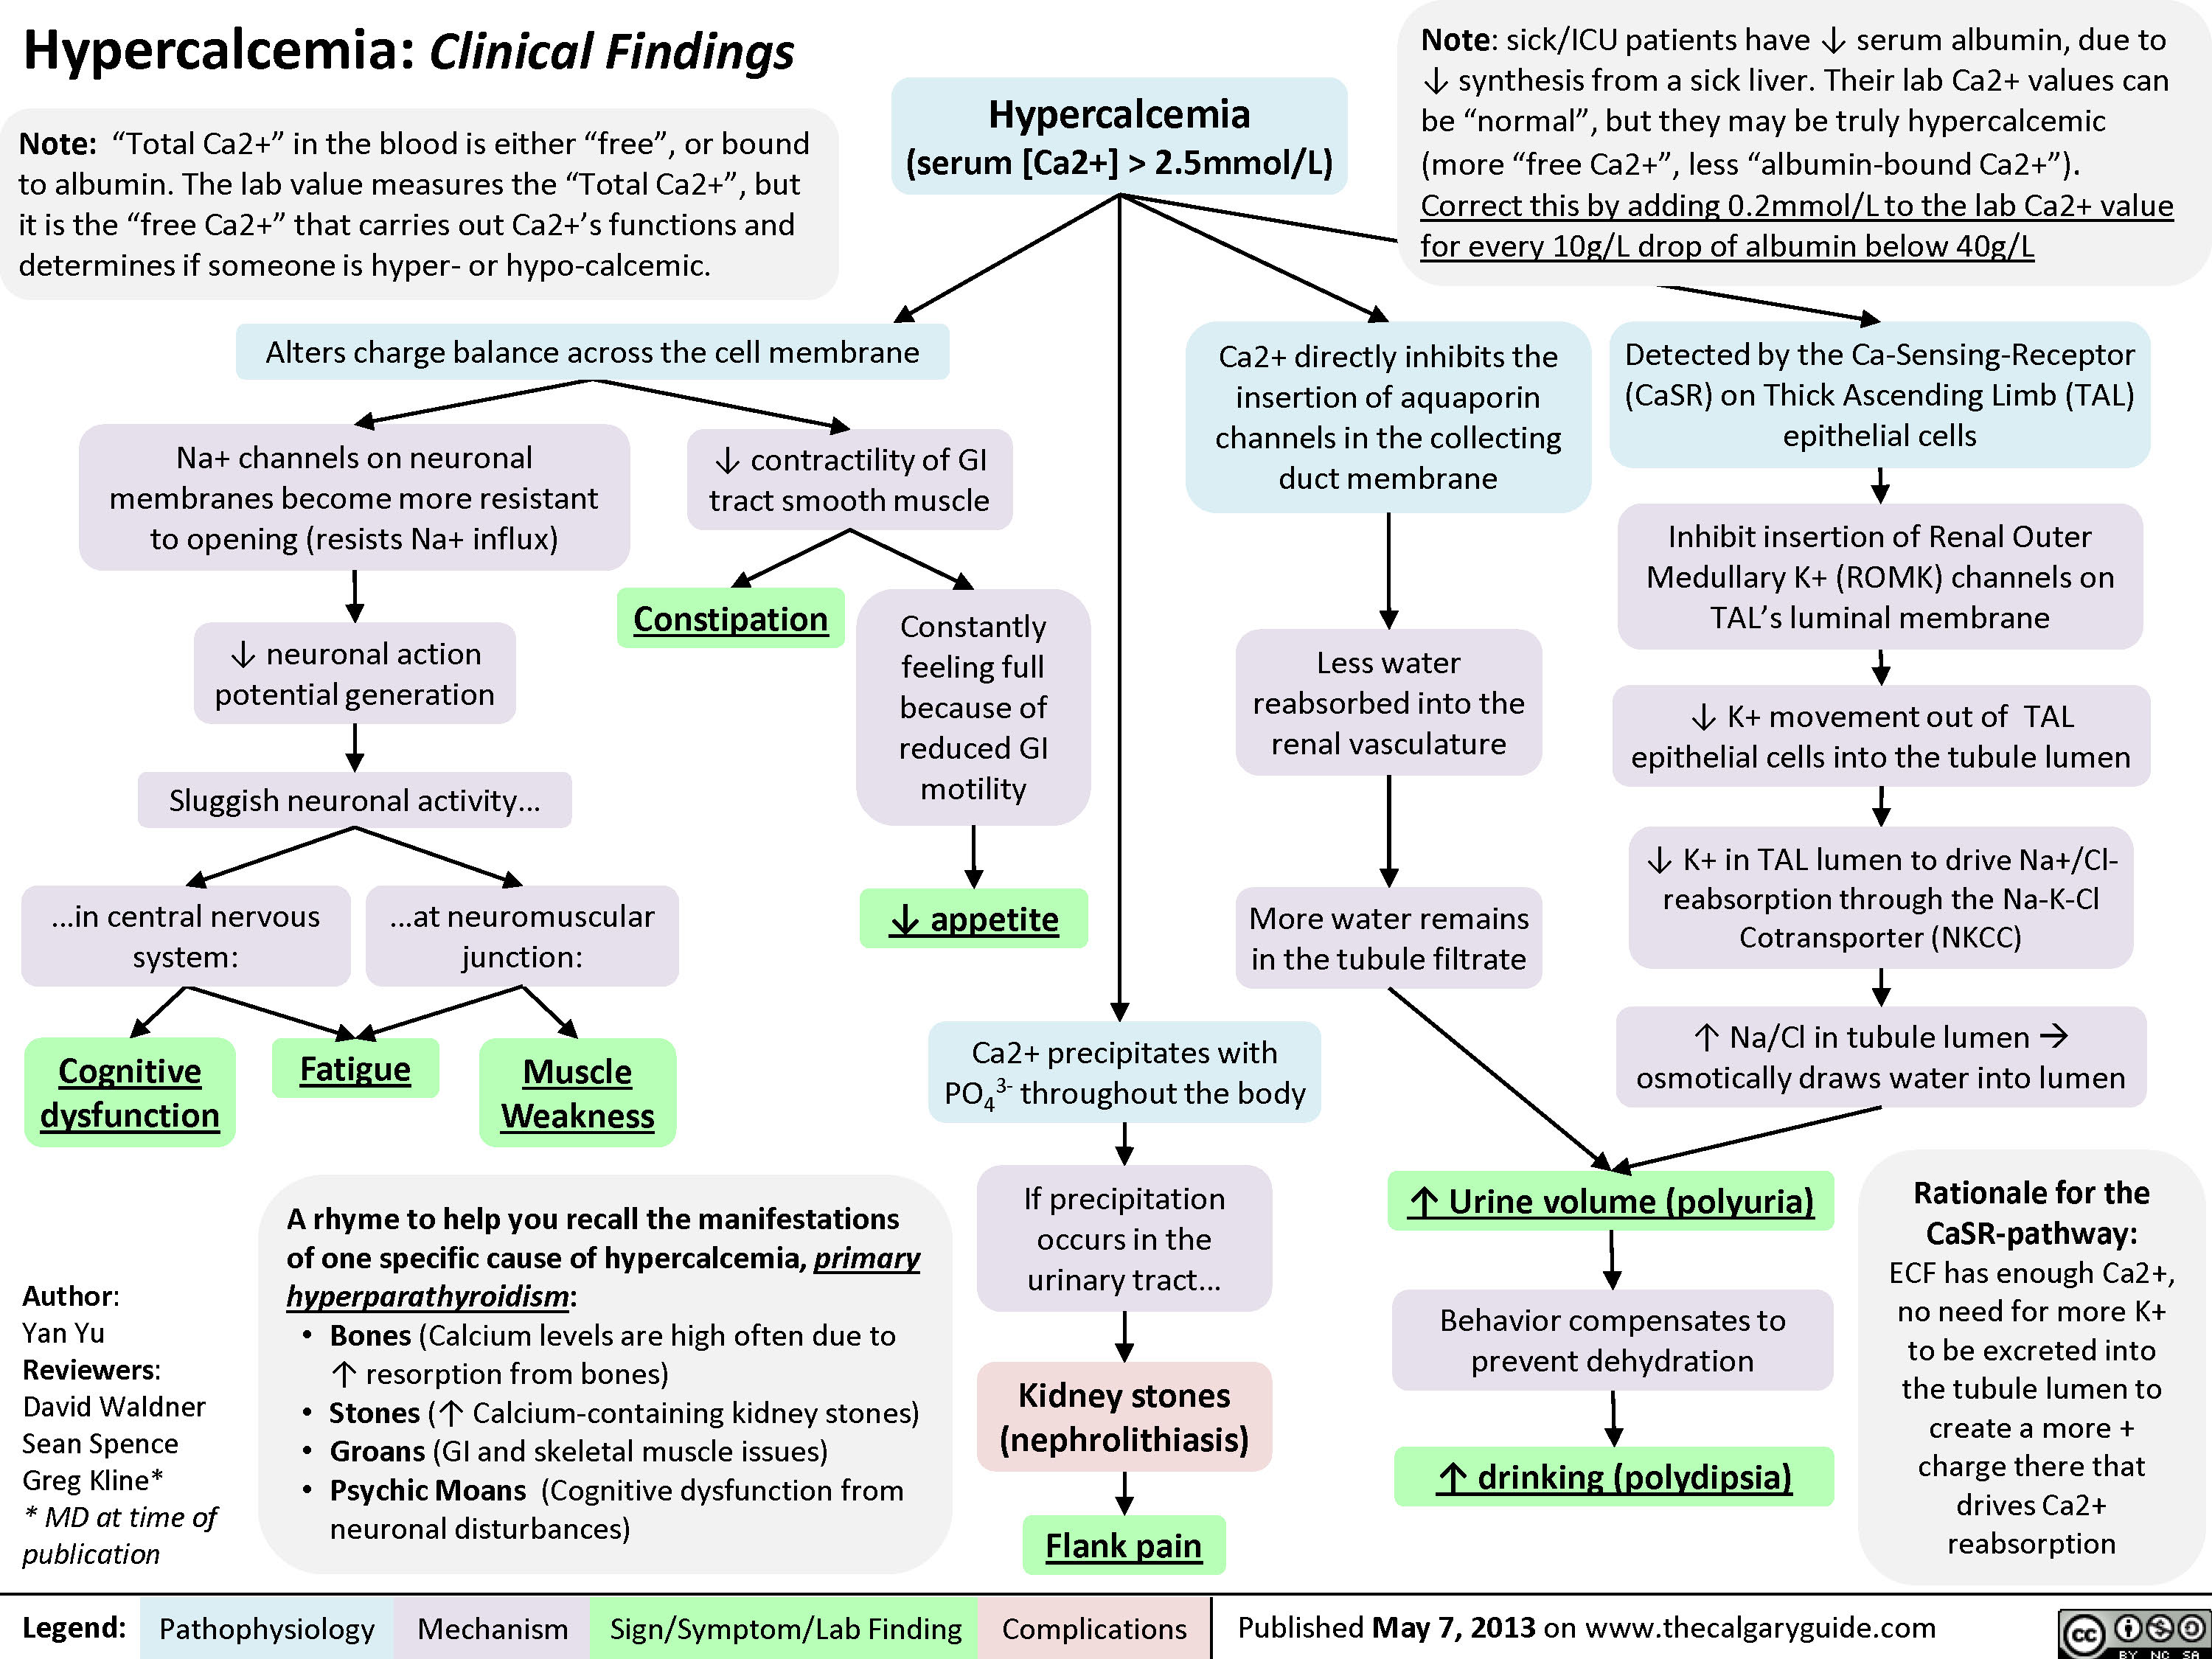 Hypercalcemia: Clinical Findings